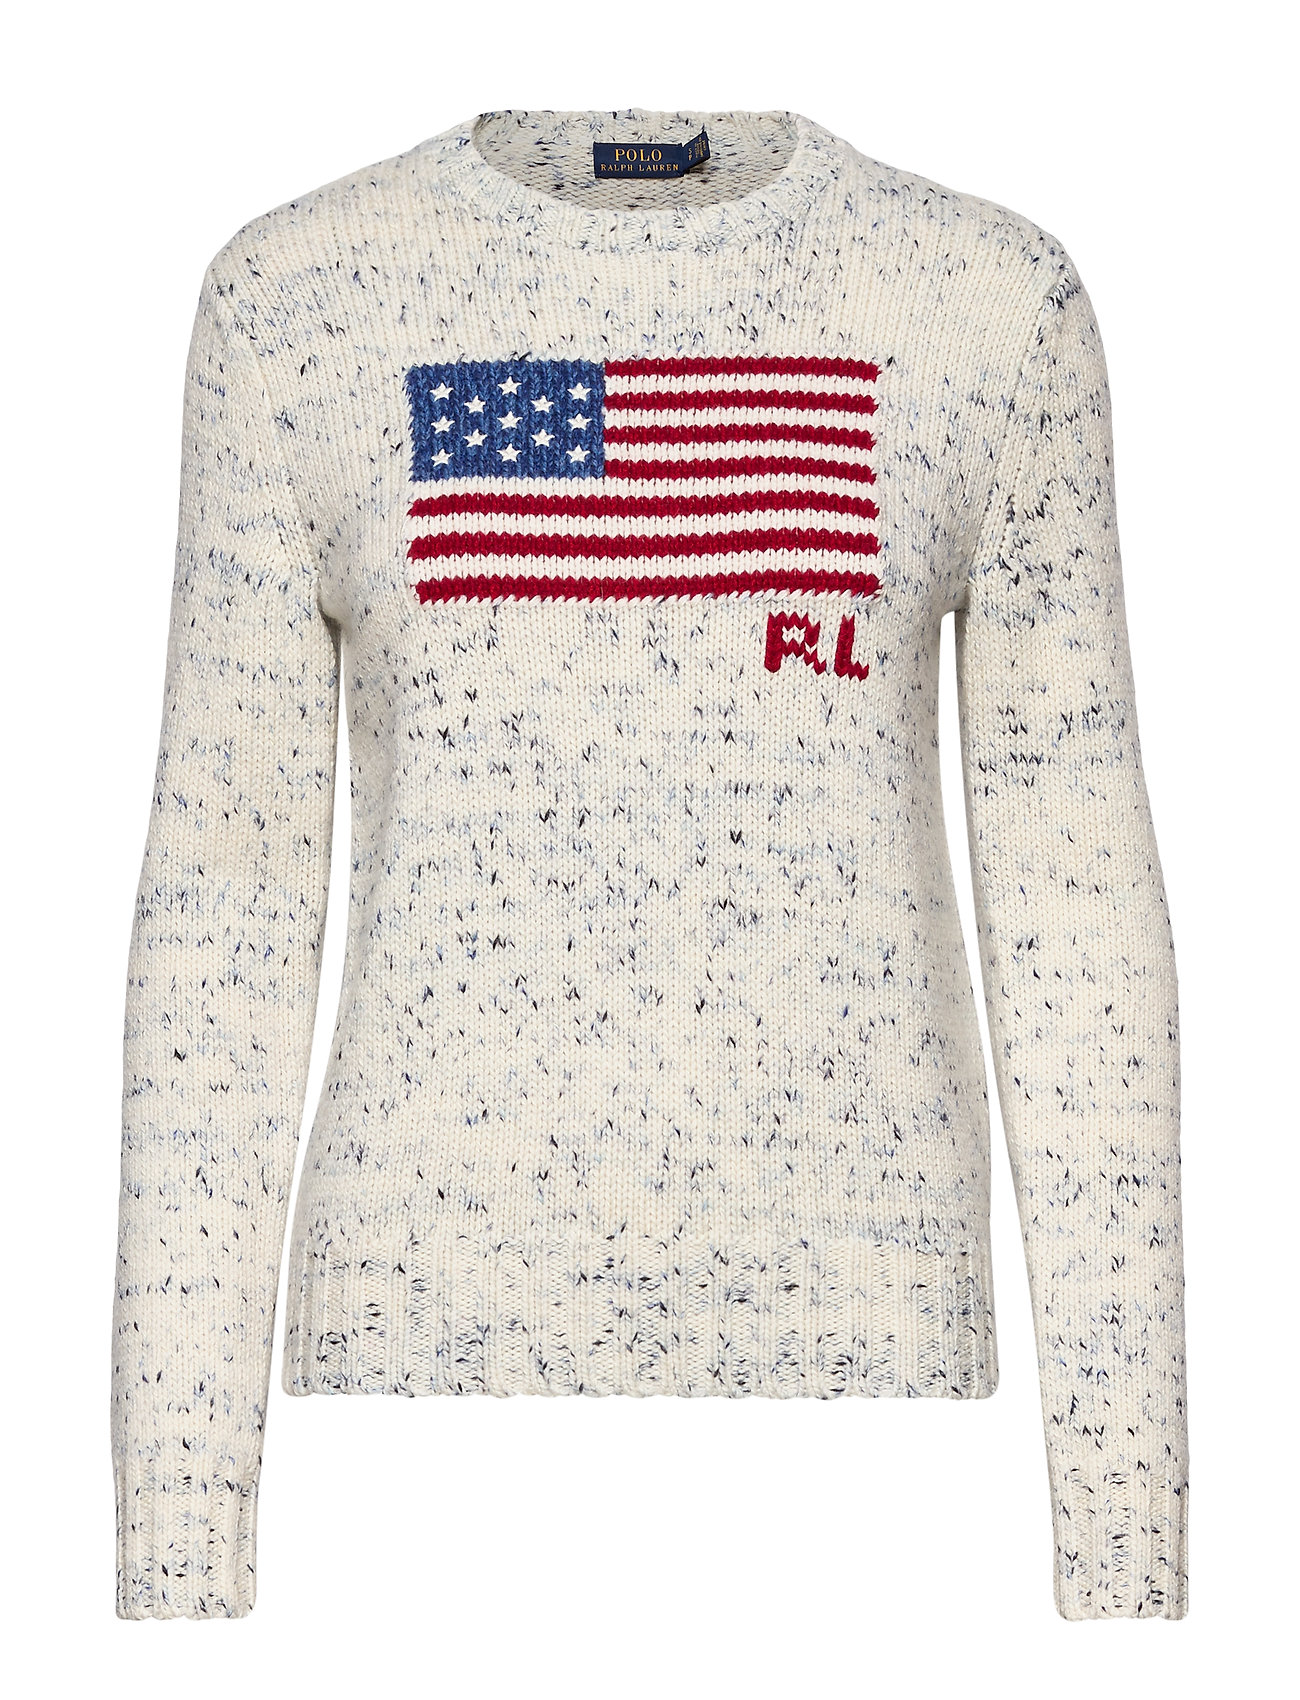 Polo Ralph Lauren Flag Wool Sweater - MULTI